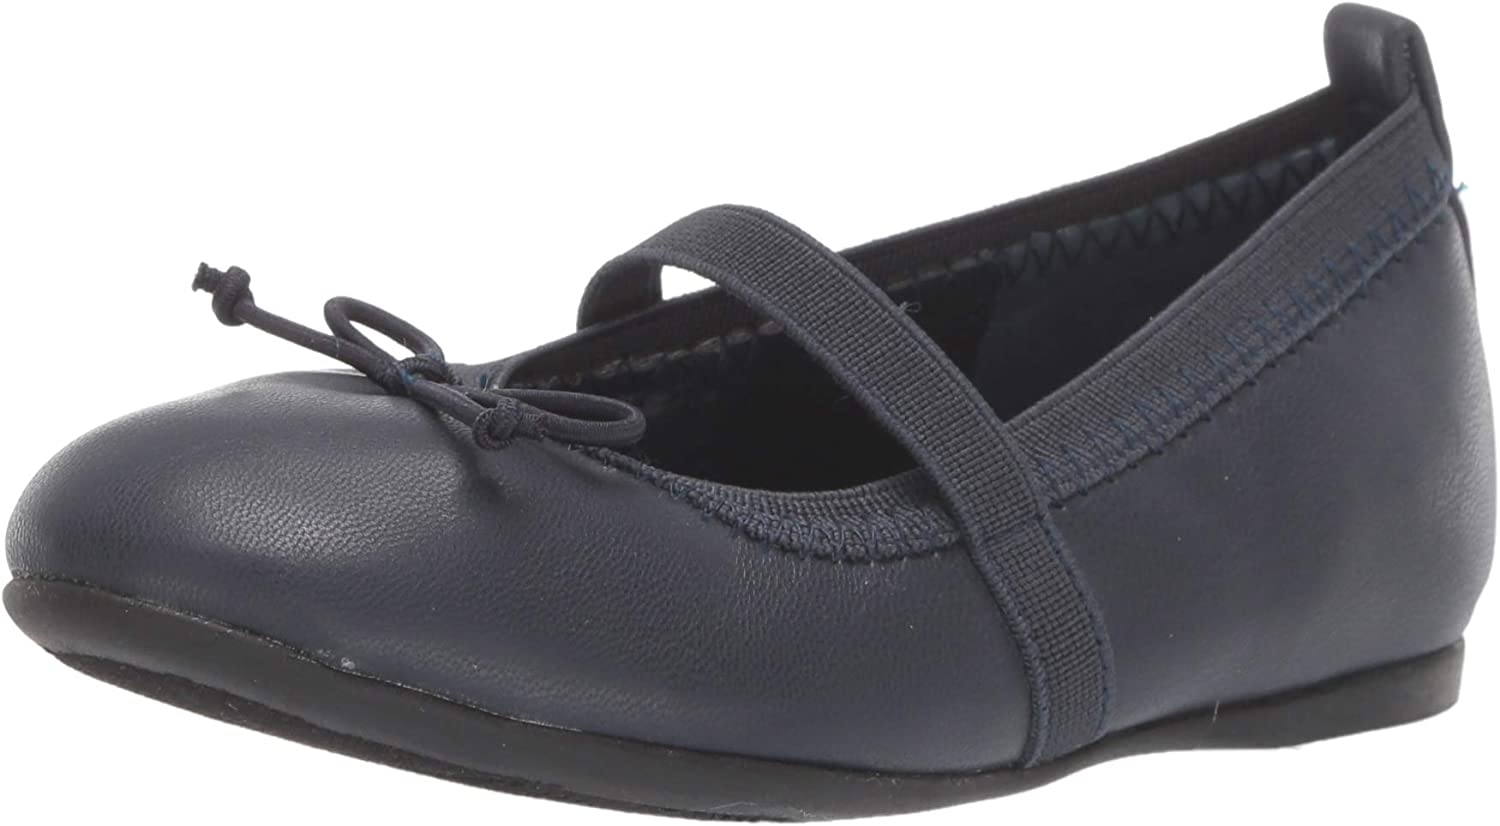 NINA Kids Esther-t Ballet Flat